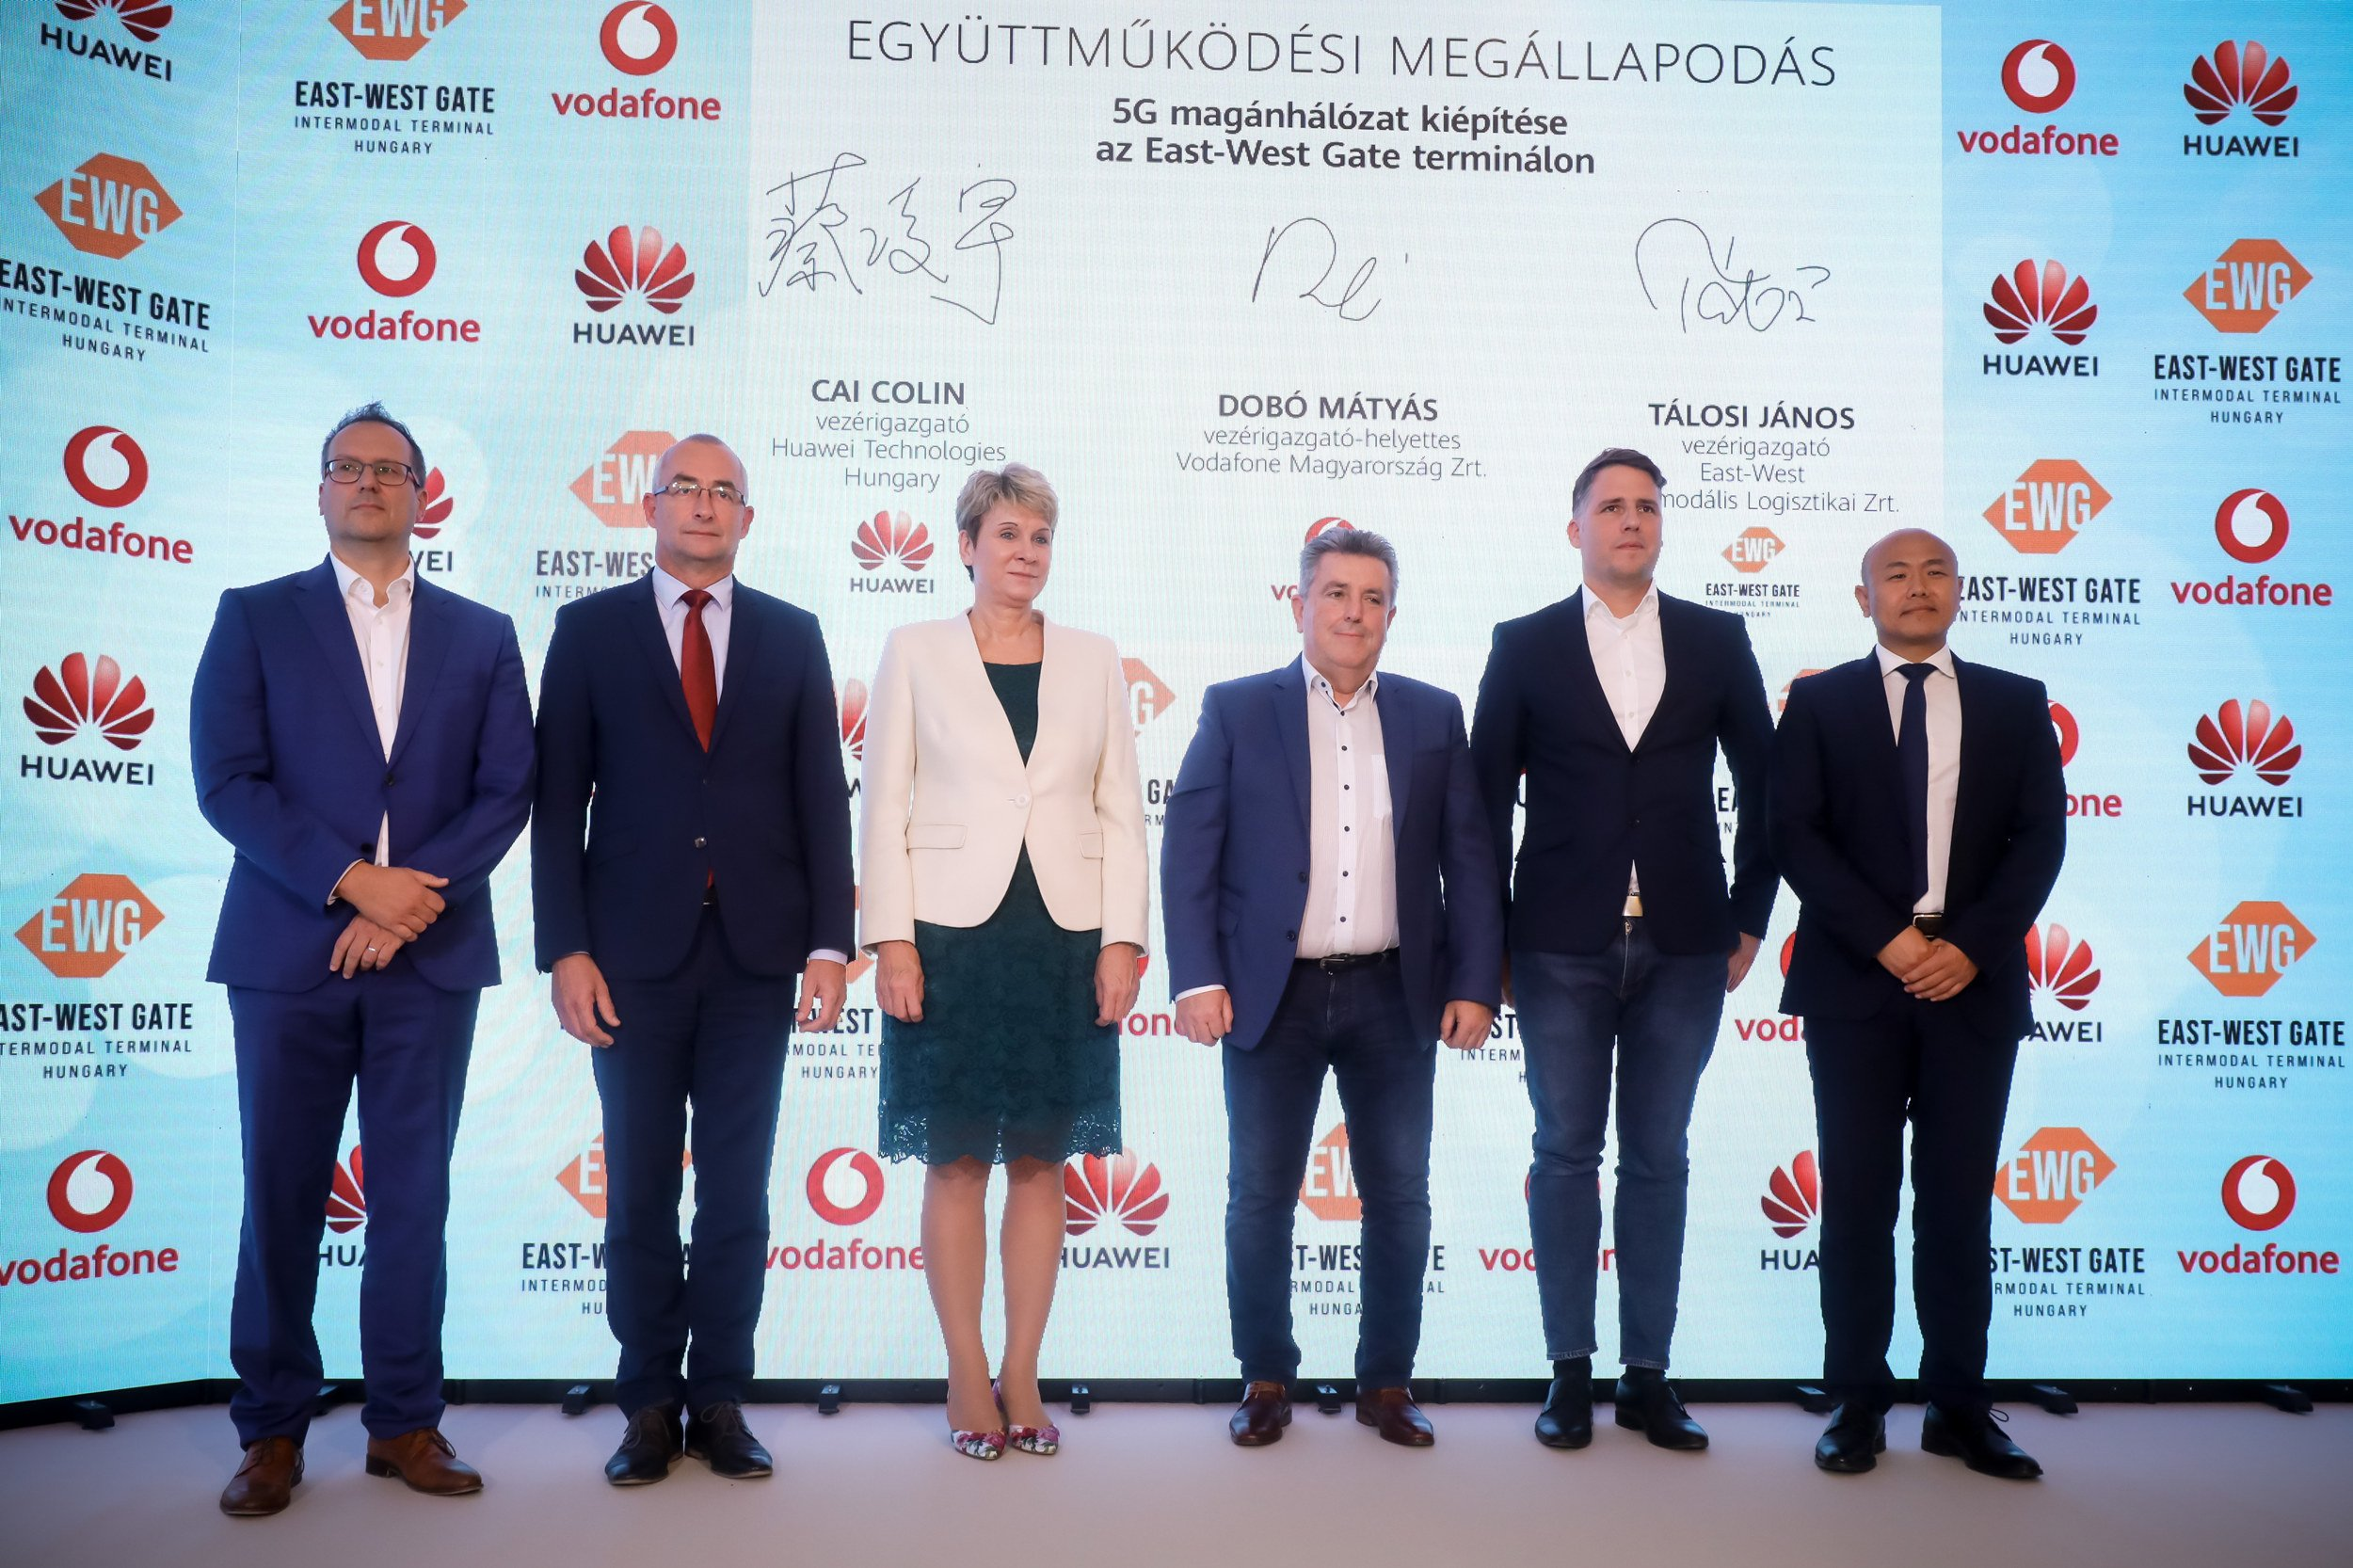 Europe's first 5G railway terminal is being built at East-West Gate, Hungary